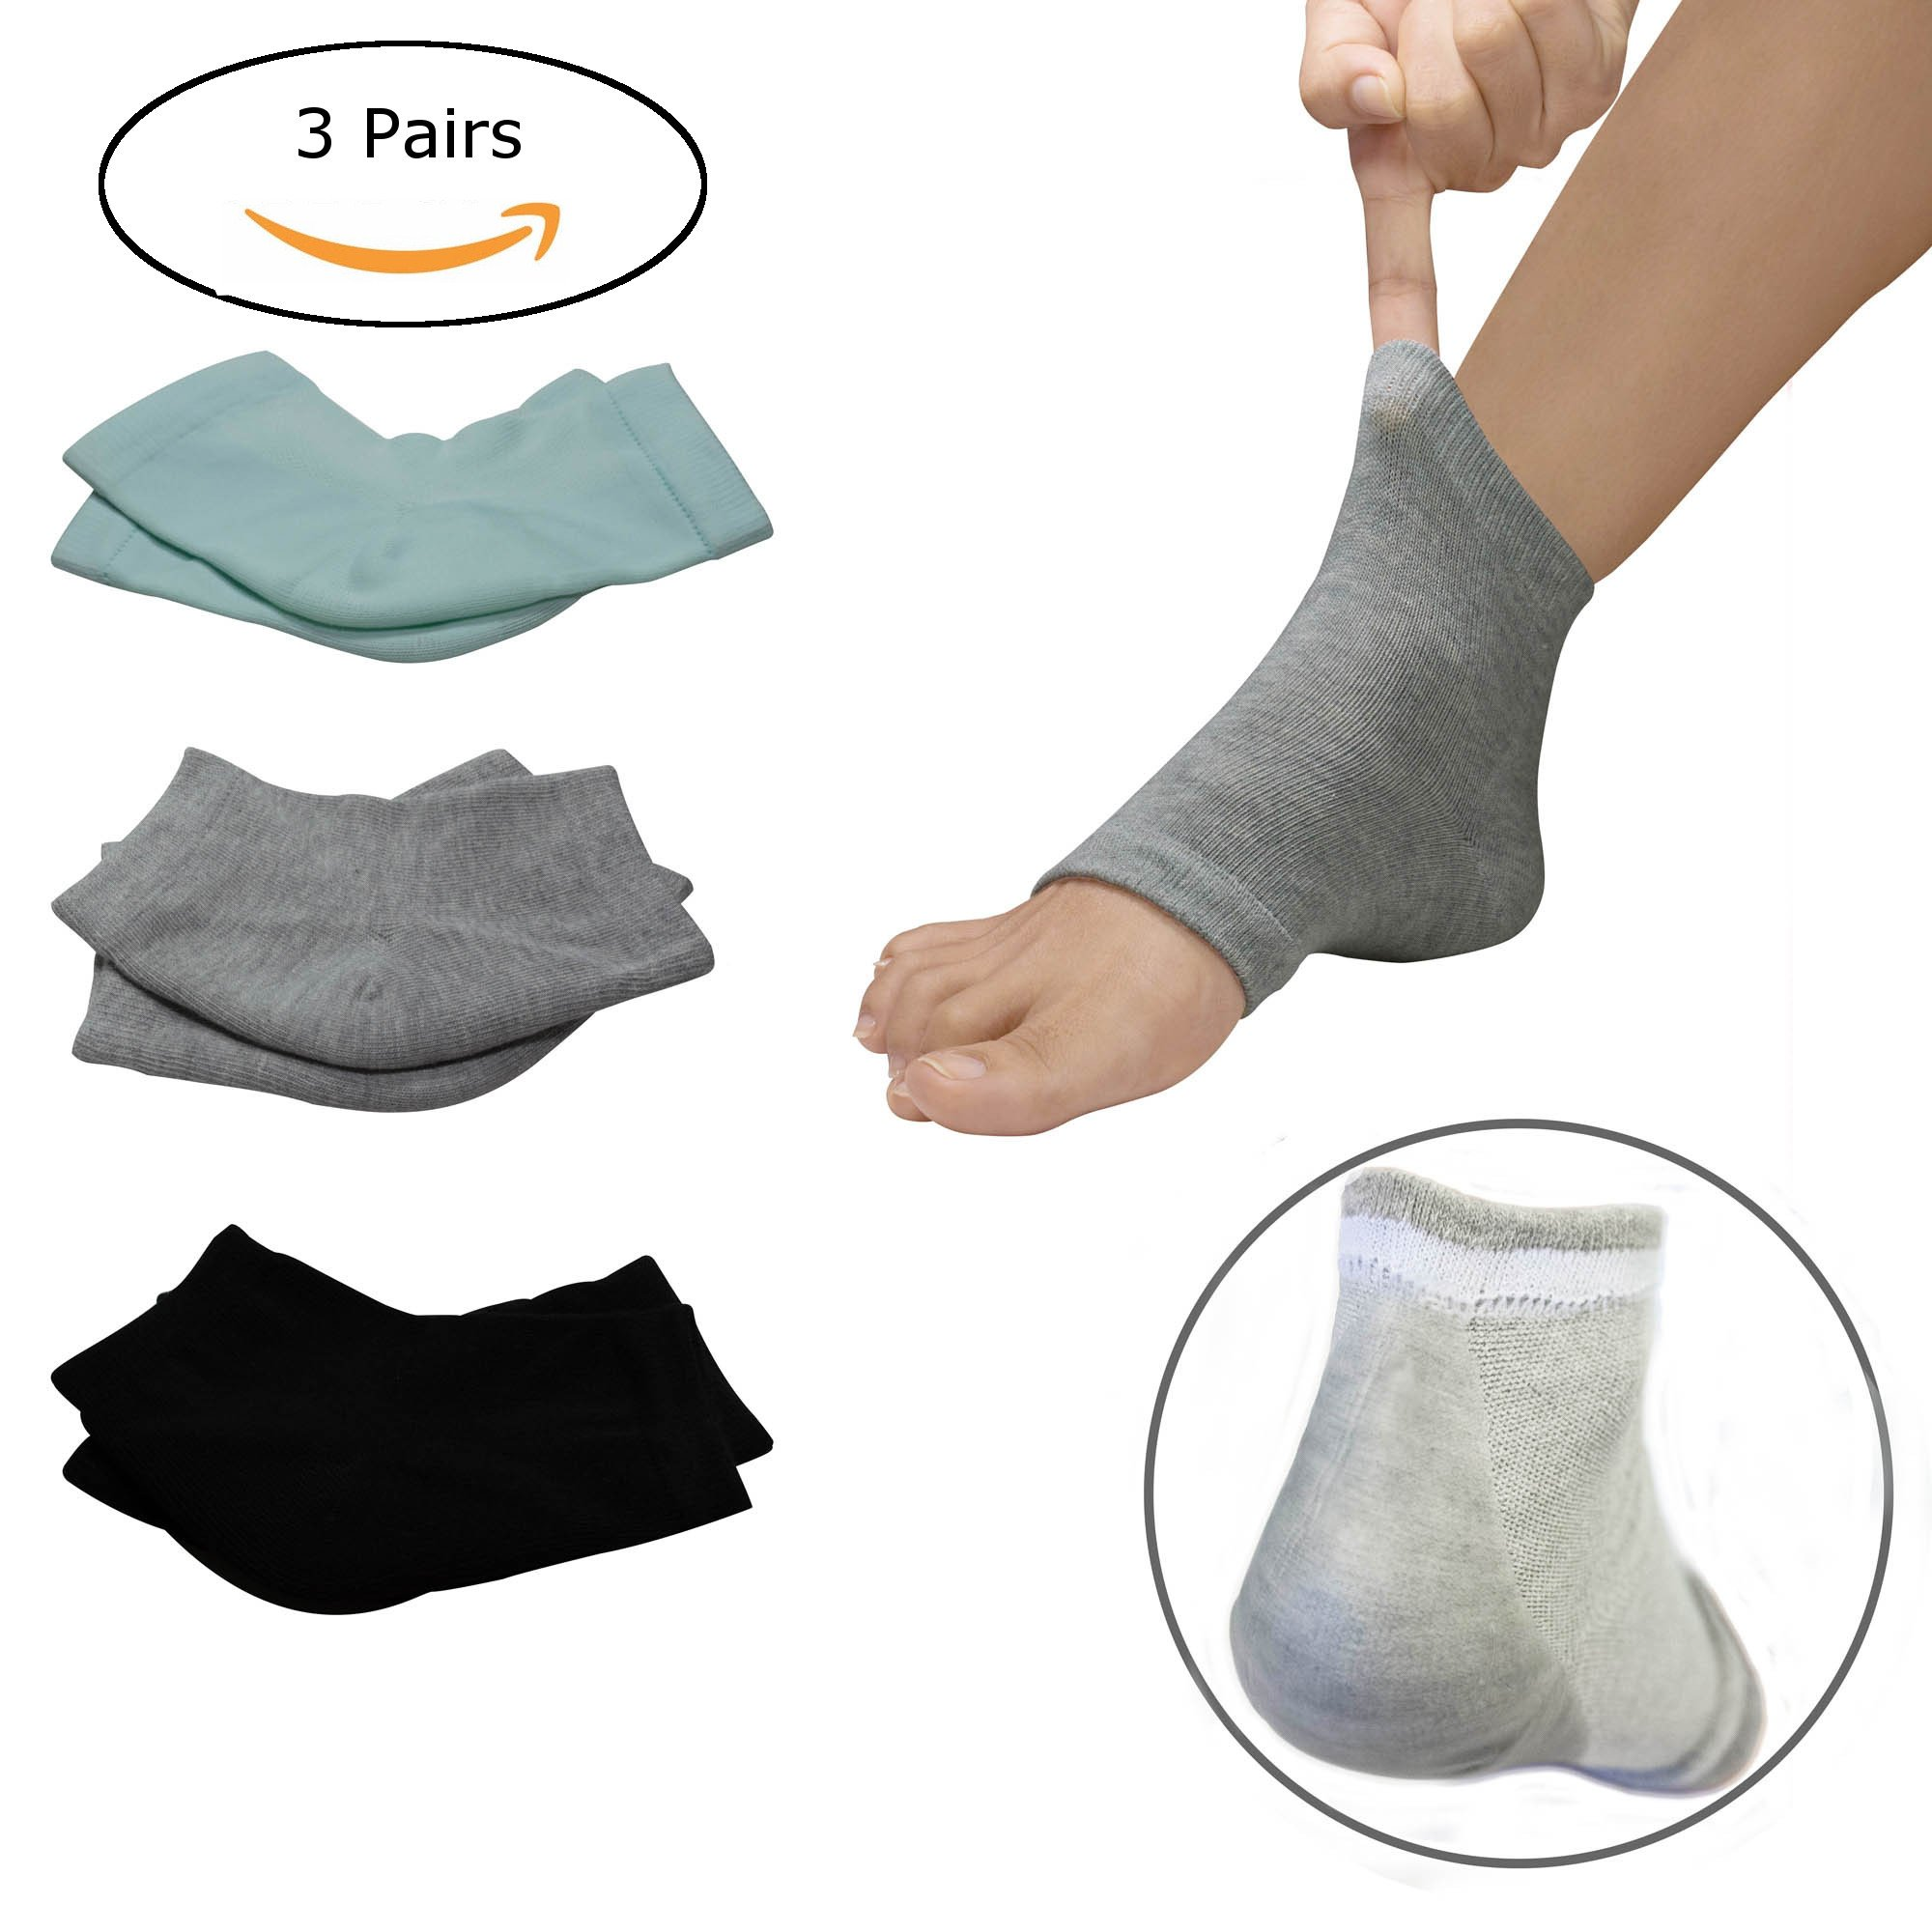 3 PAIRS-Moisturizing Gel Heel Socks w/ Enriched Vitamins for Dry Hard Cracked Heels & DIY Simple Home Remedies by Triim Fitness